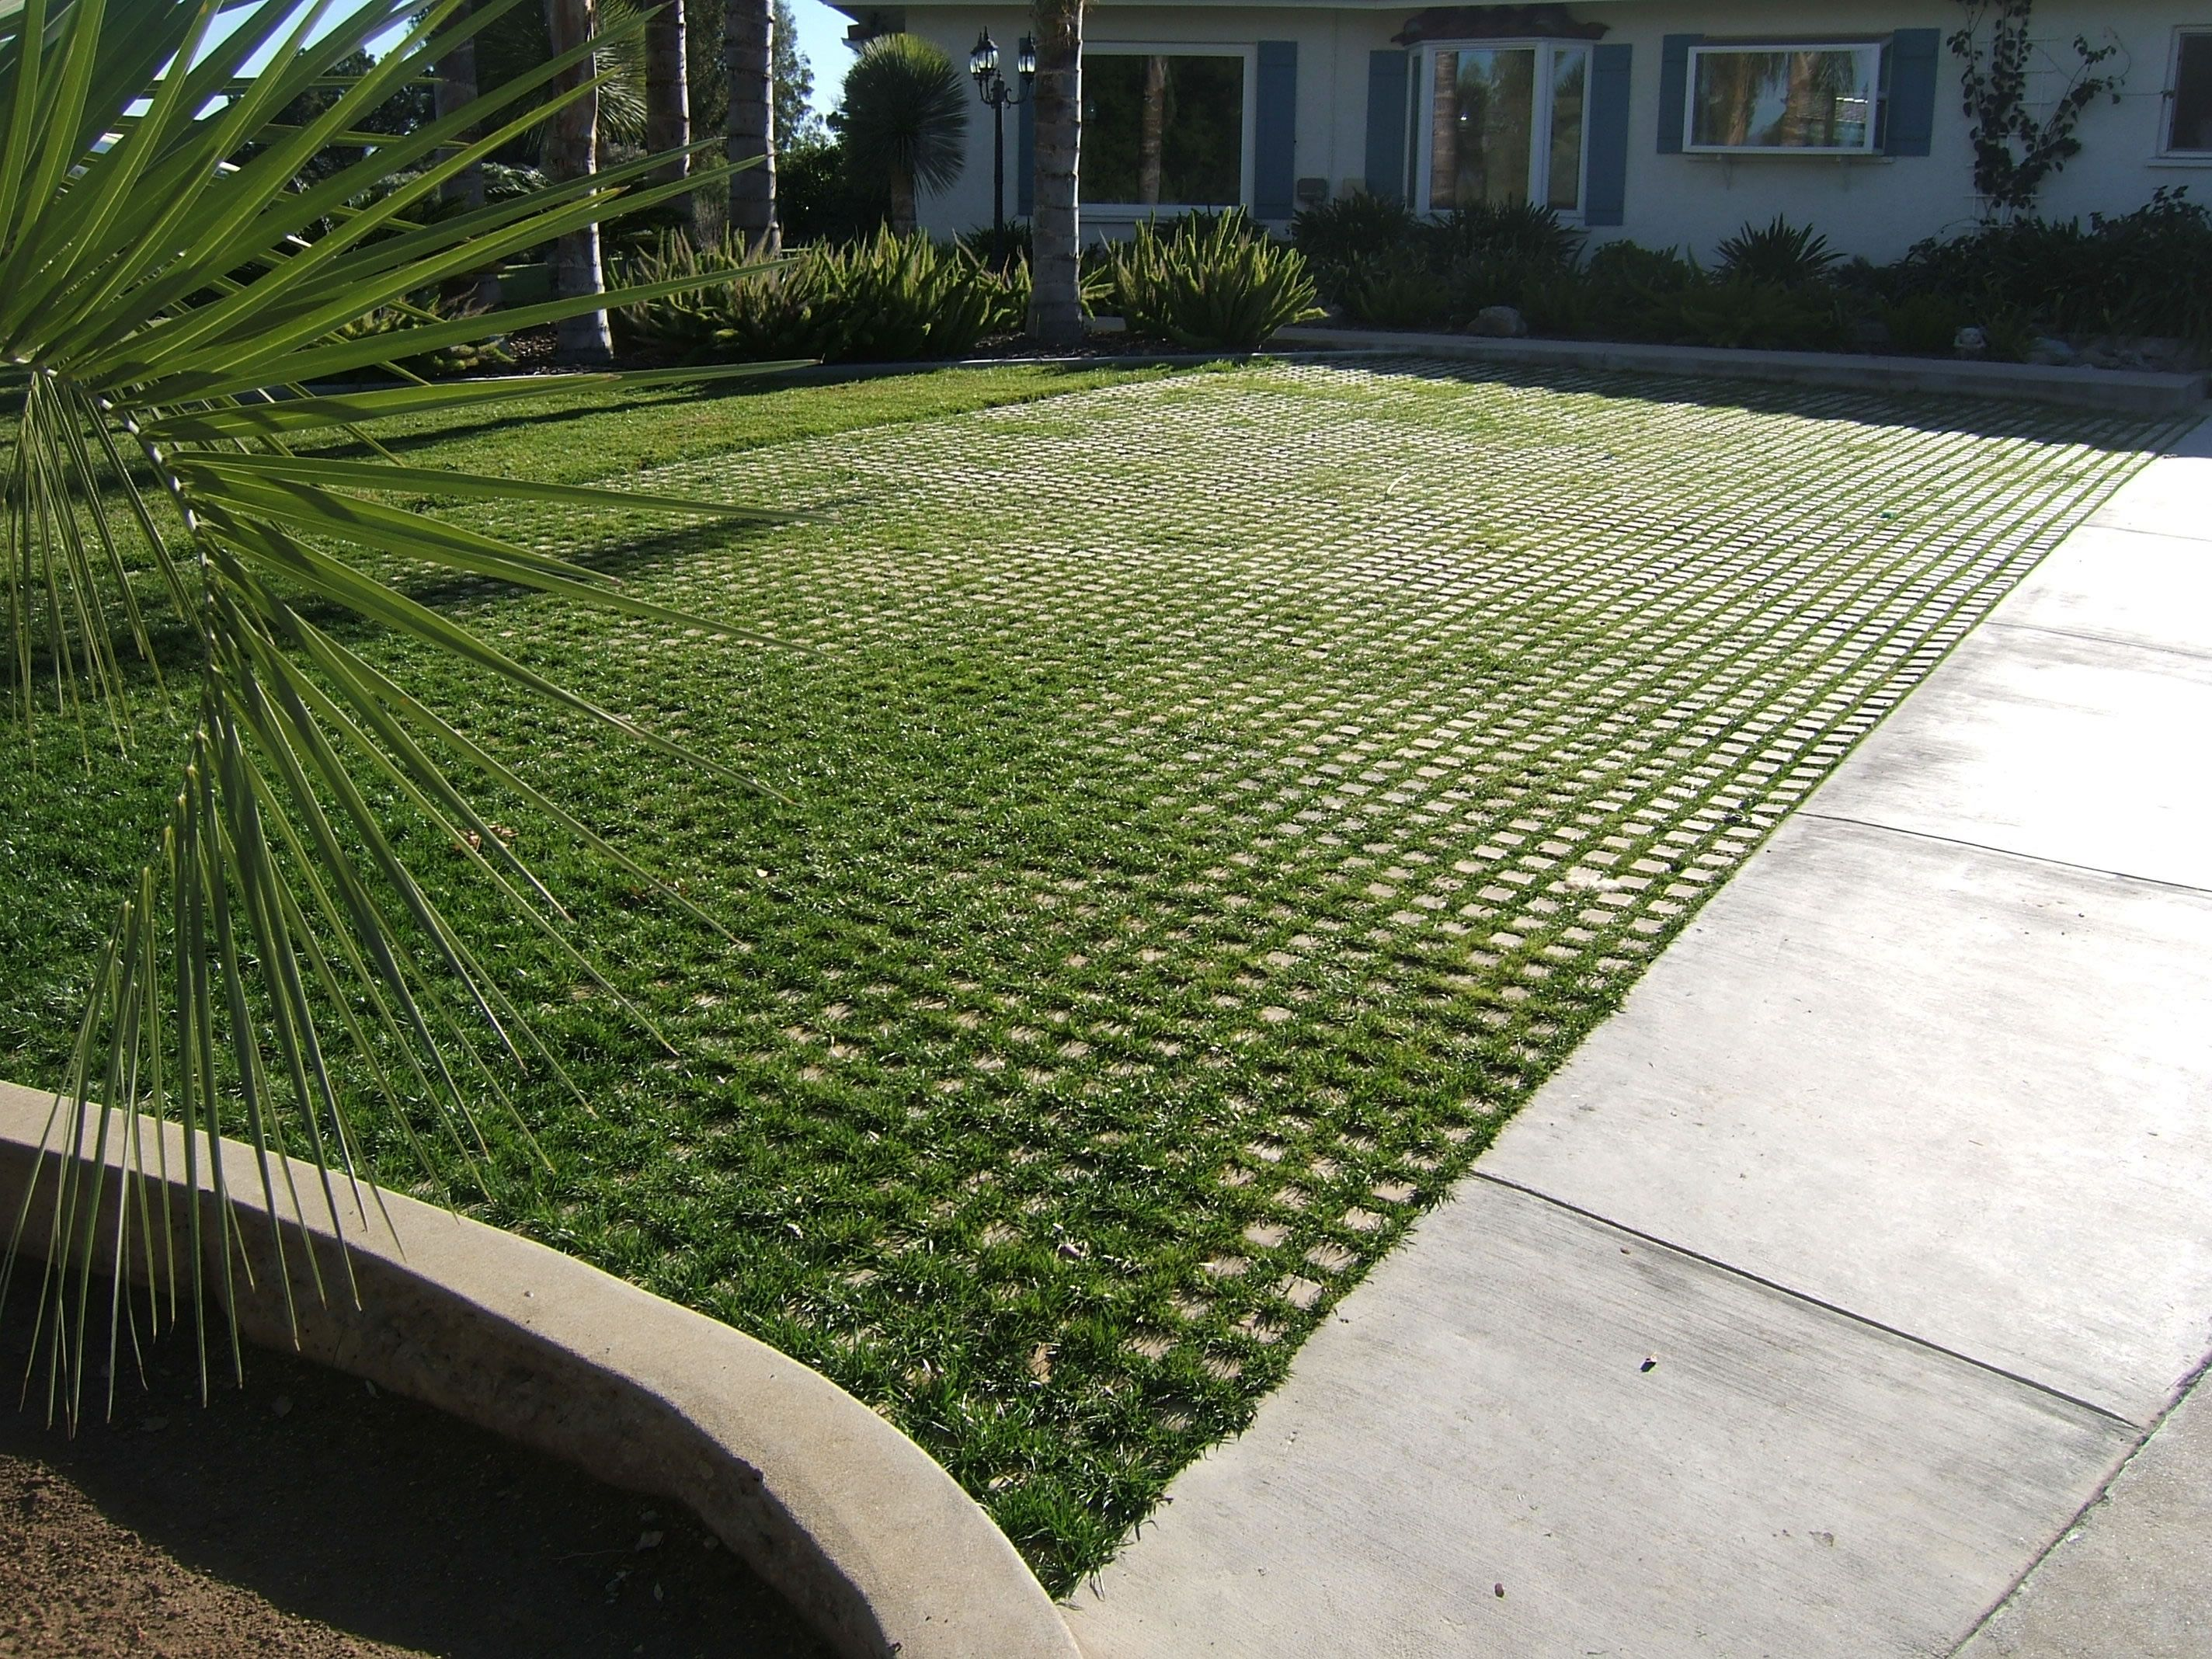 Drivable Grass Permeable Paving System For Living